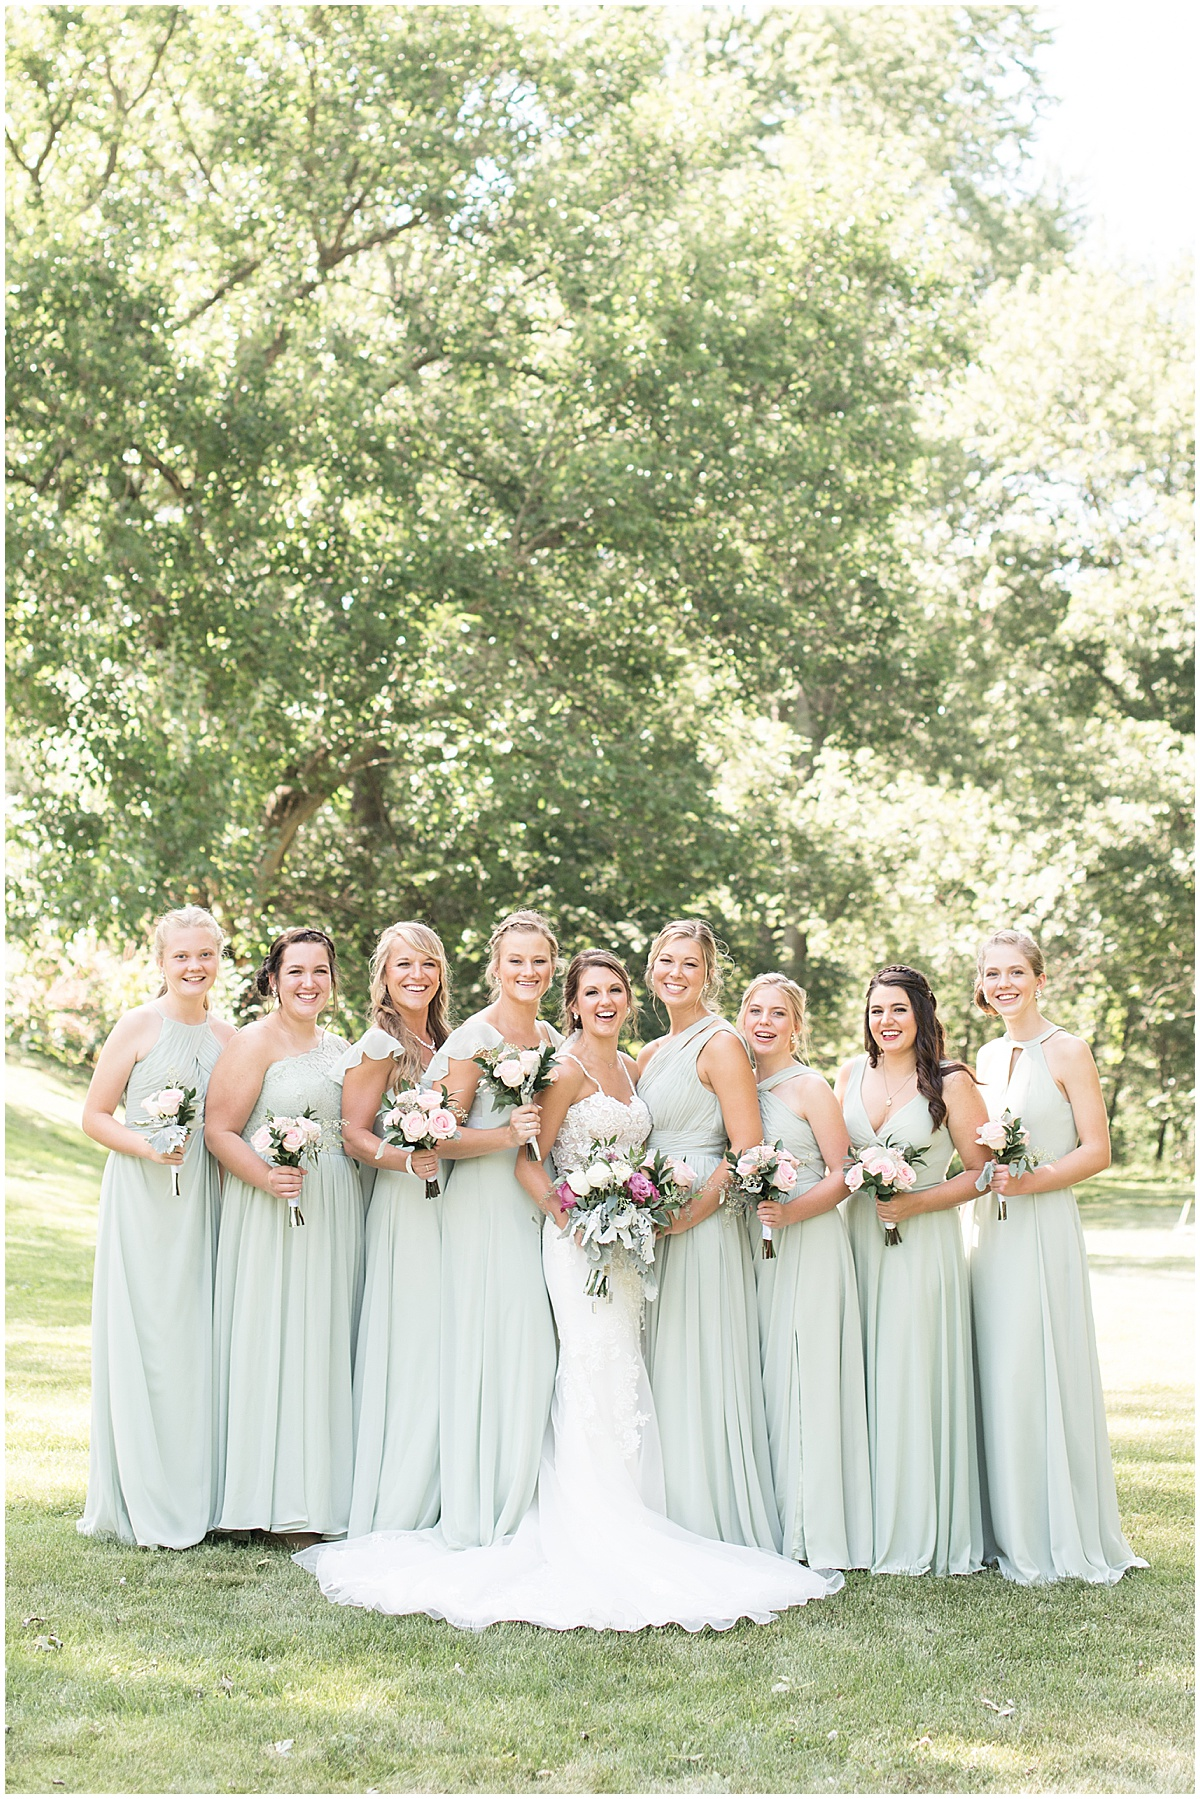 Bride and bridesmaids ready for Rensselaer, Indiana wedding